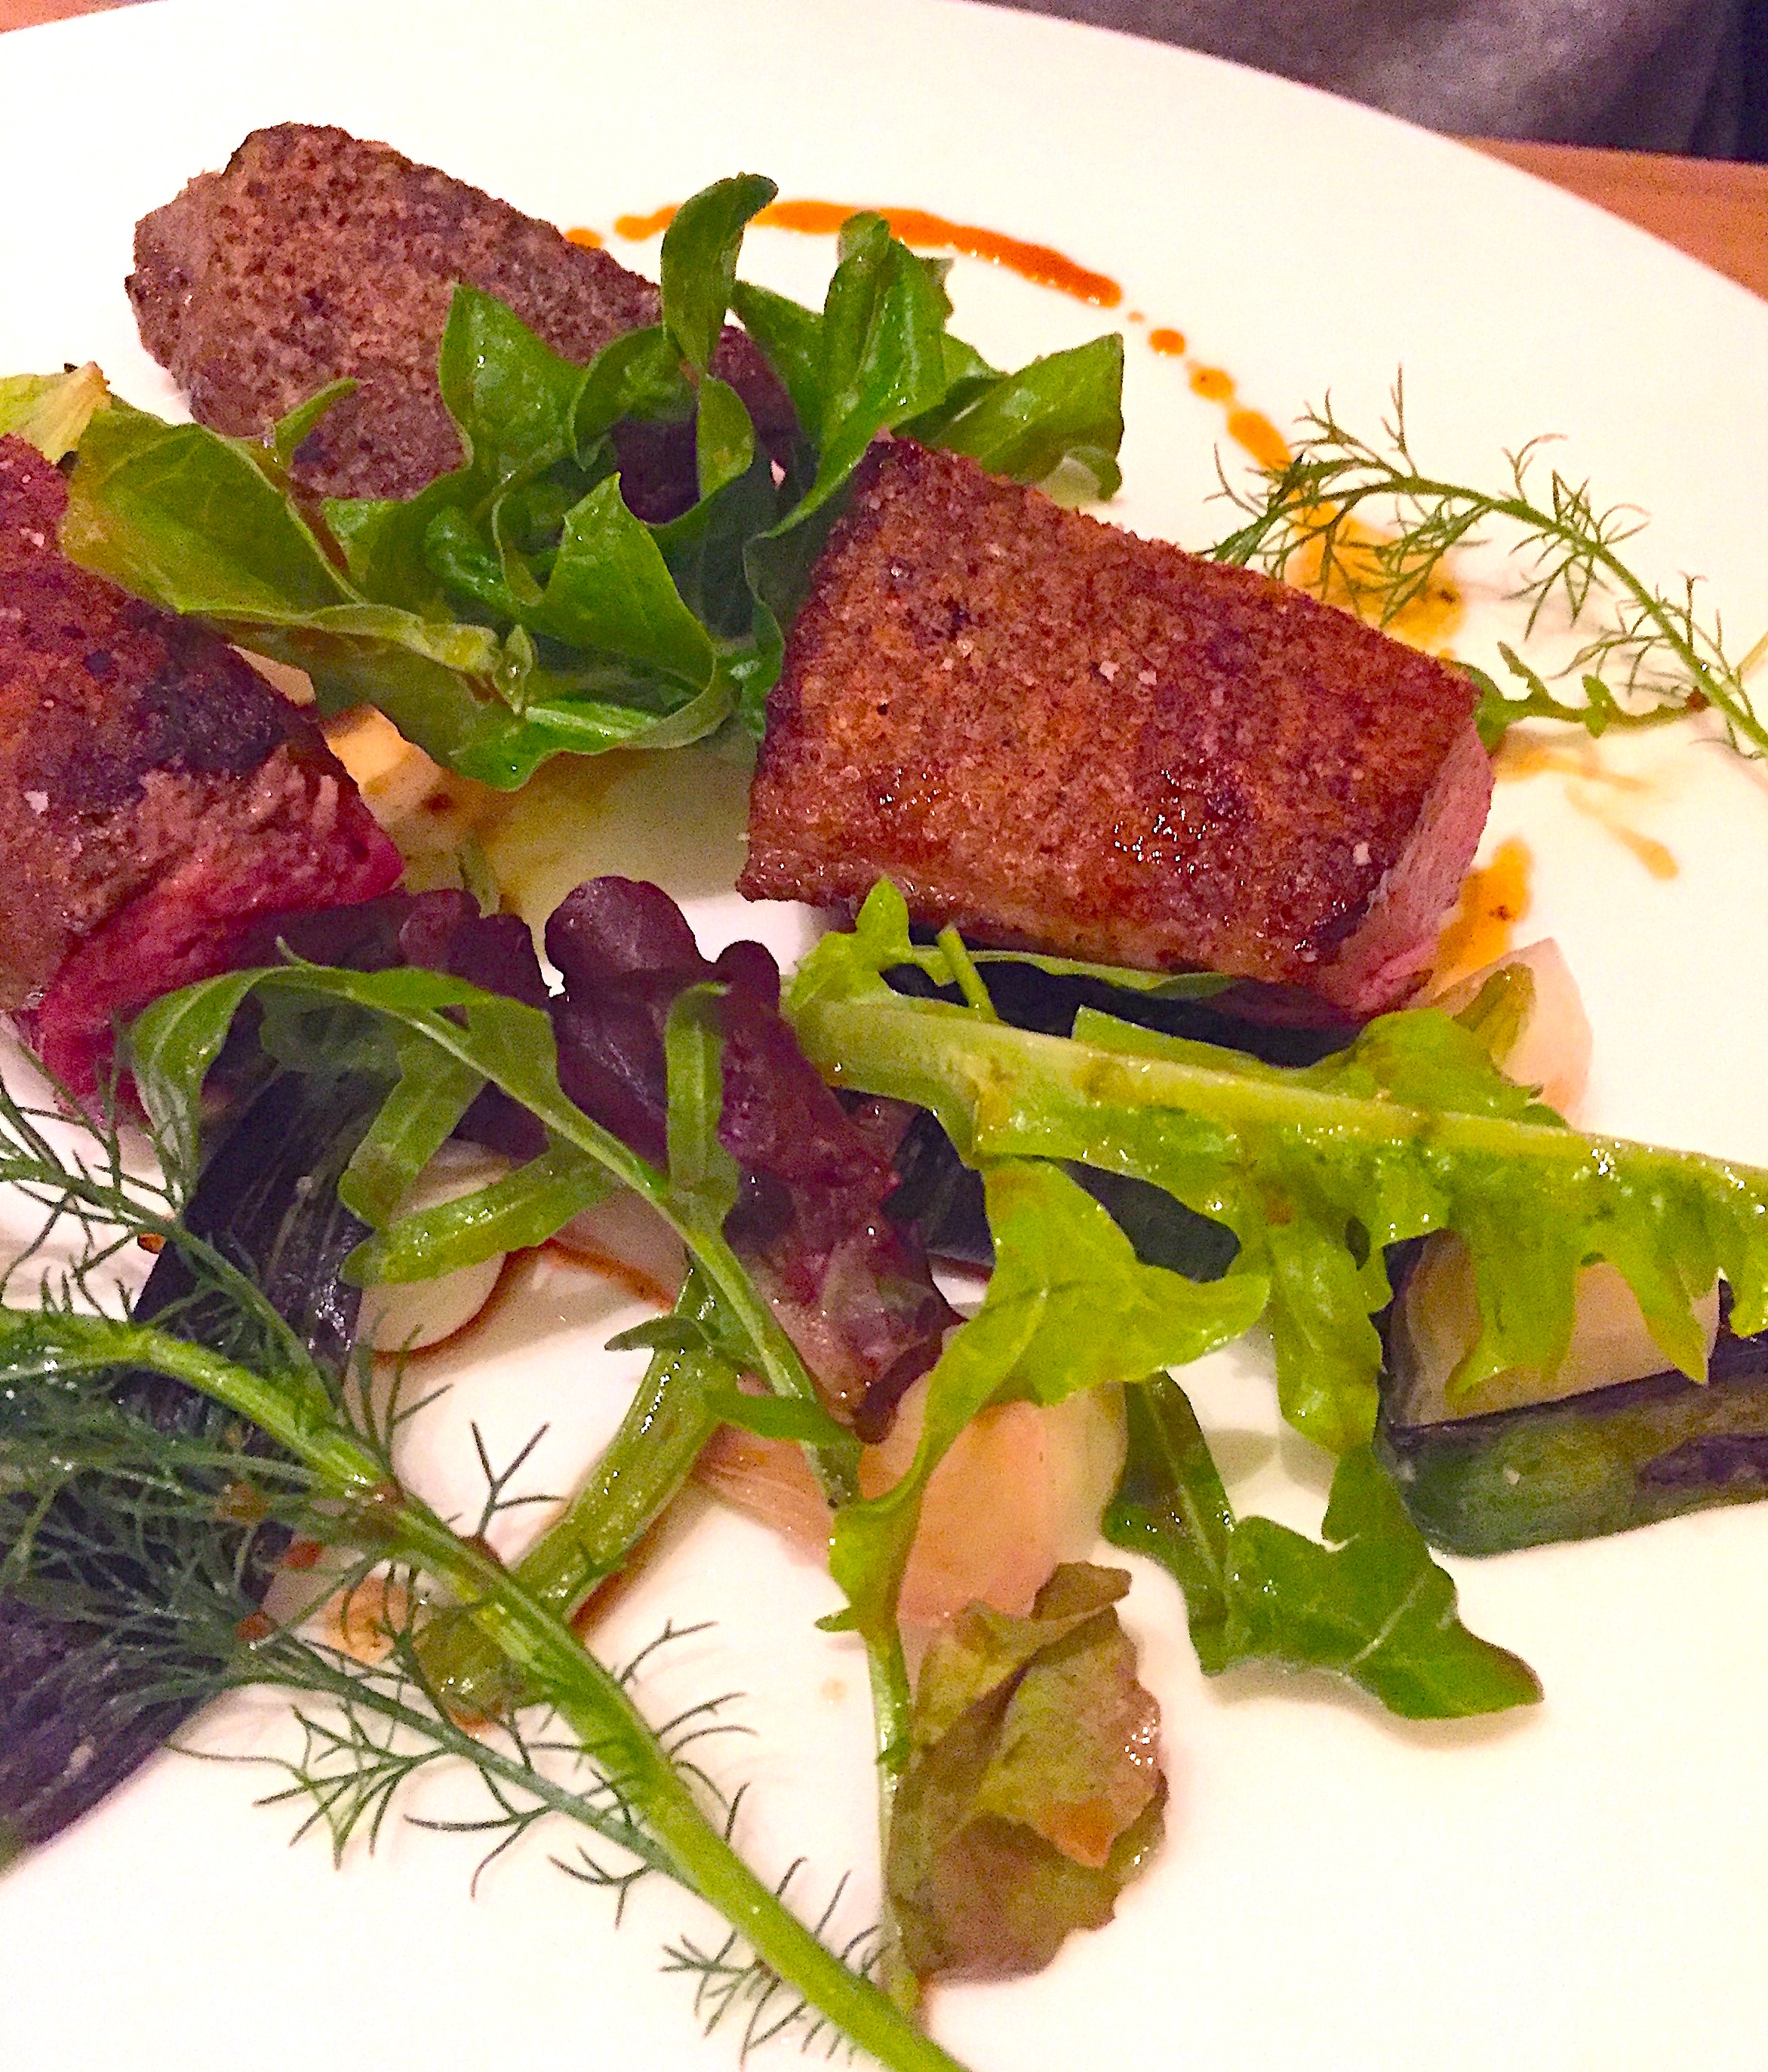 Restaurant Passerini - roasted duckling with baby onions and olives @Alexander Lobrano